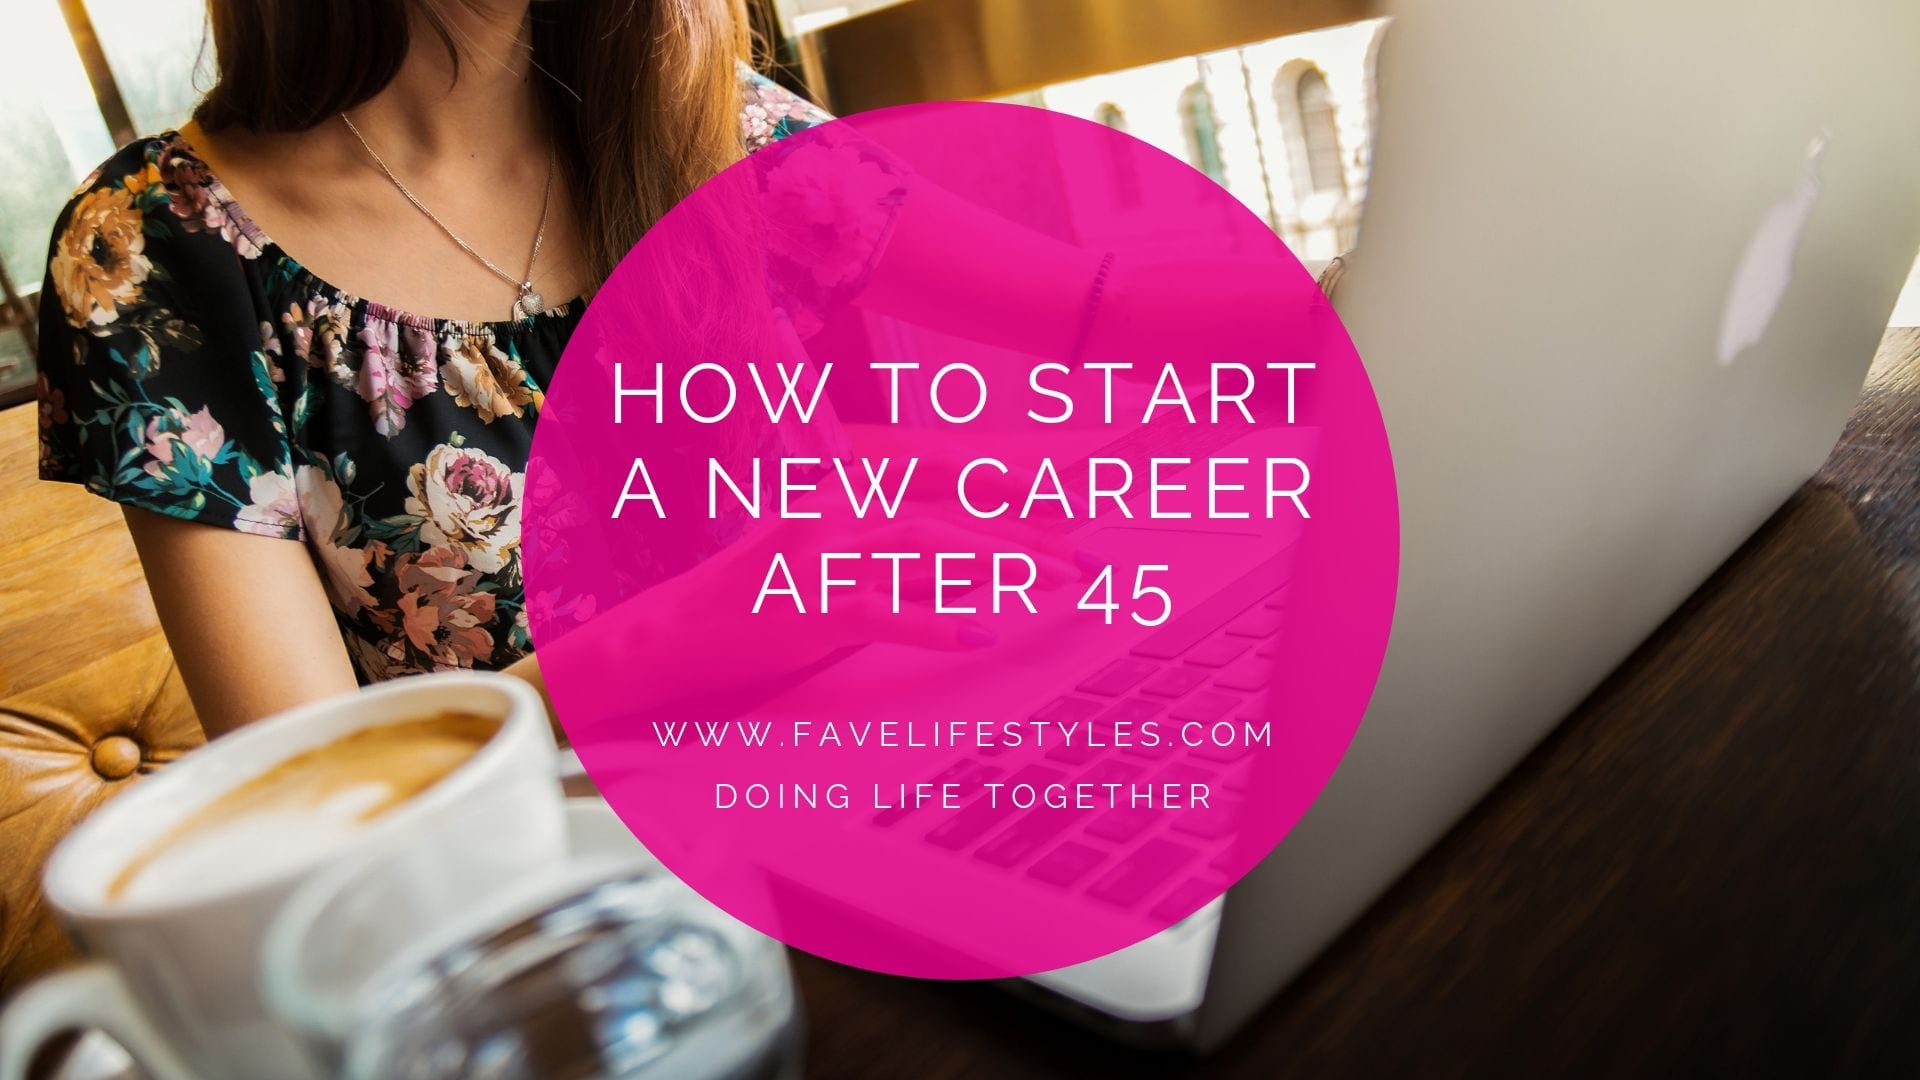 How to Start A New Career after 45